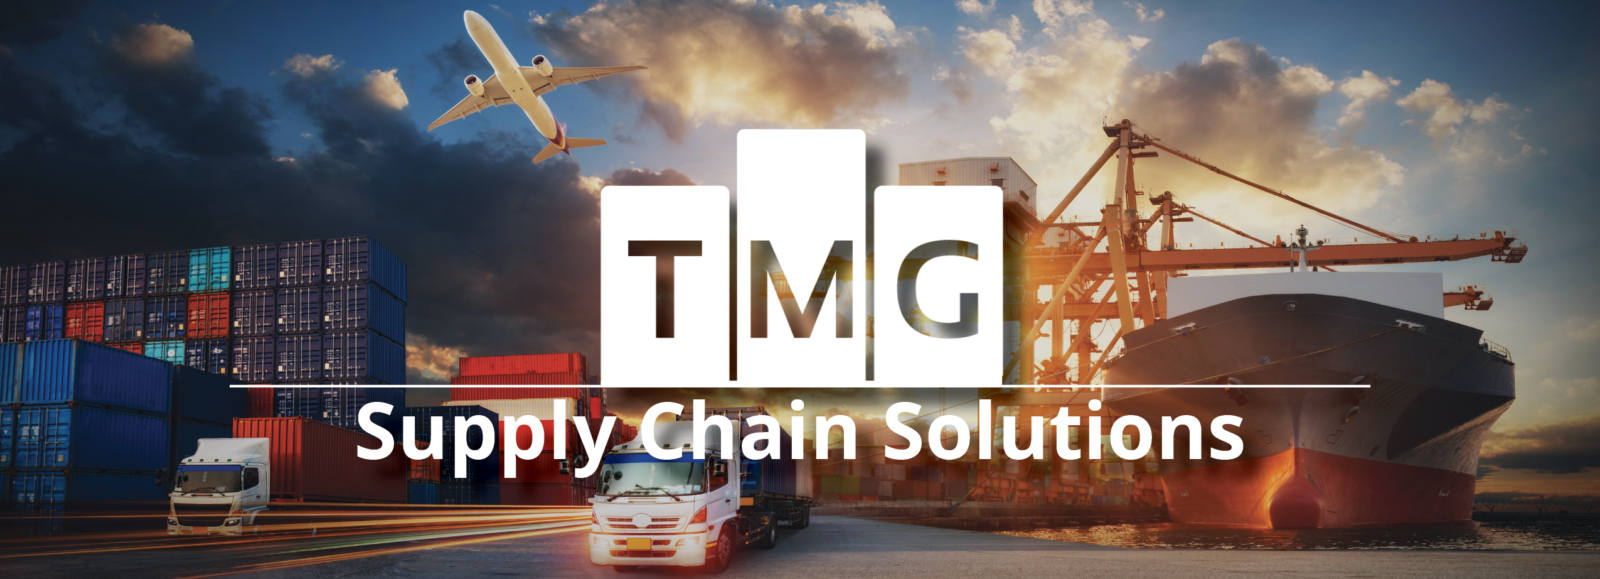 Supply Chain & Logisitics Team